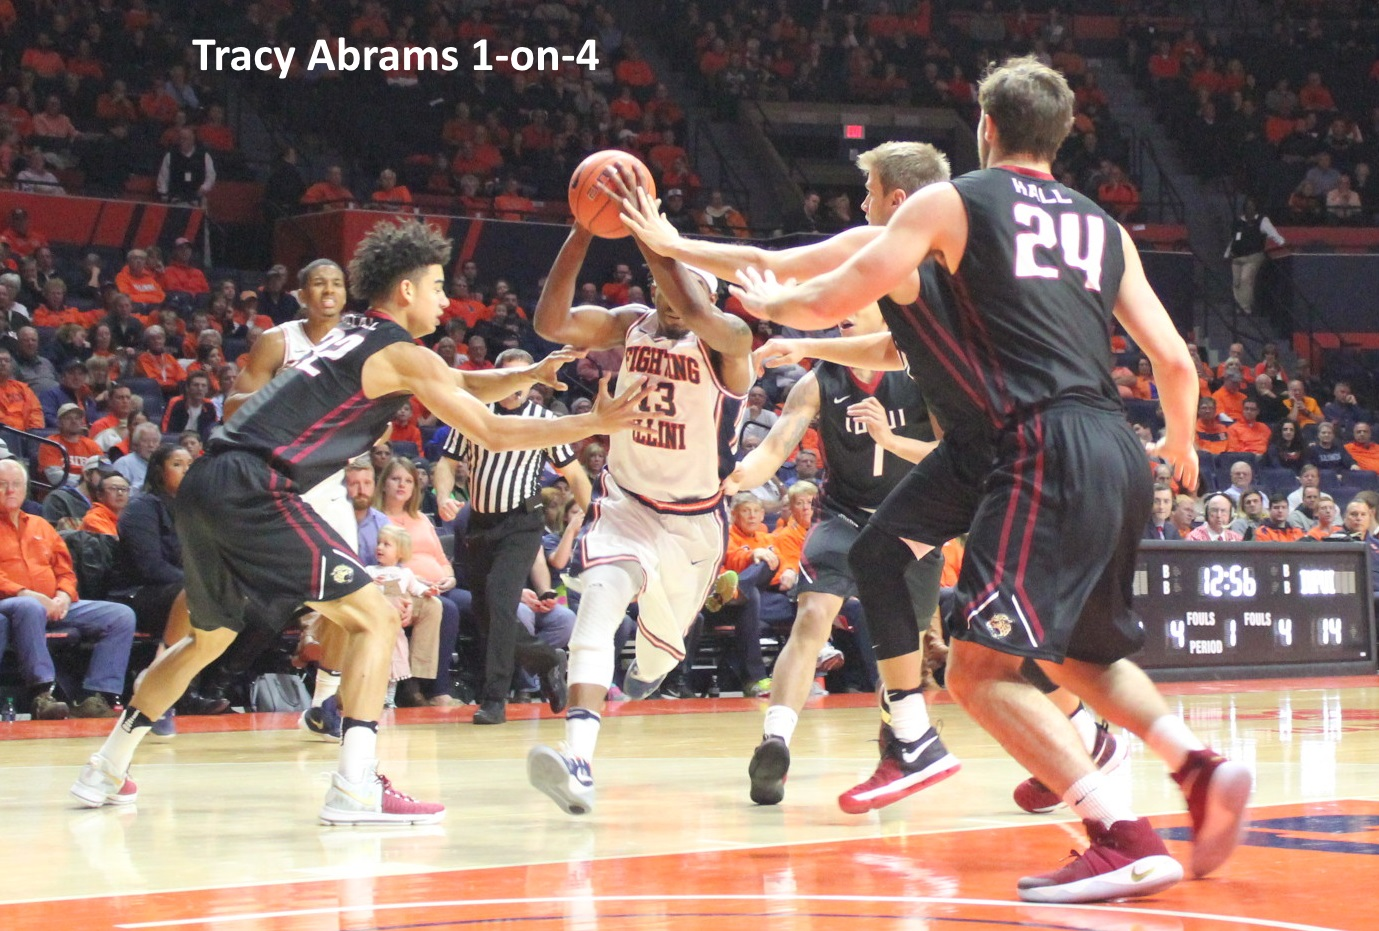 tracy-abrams-1-on-4